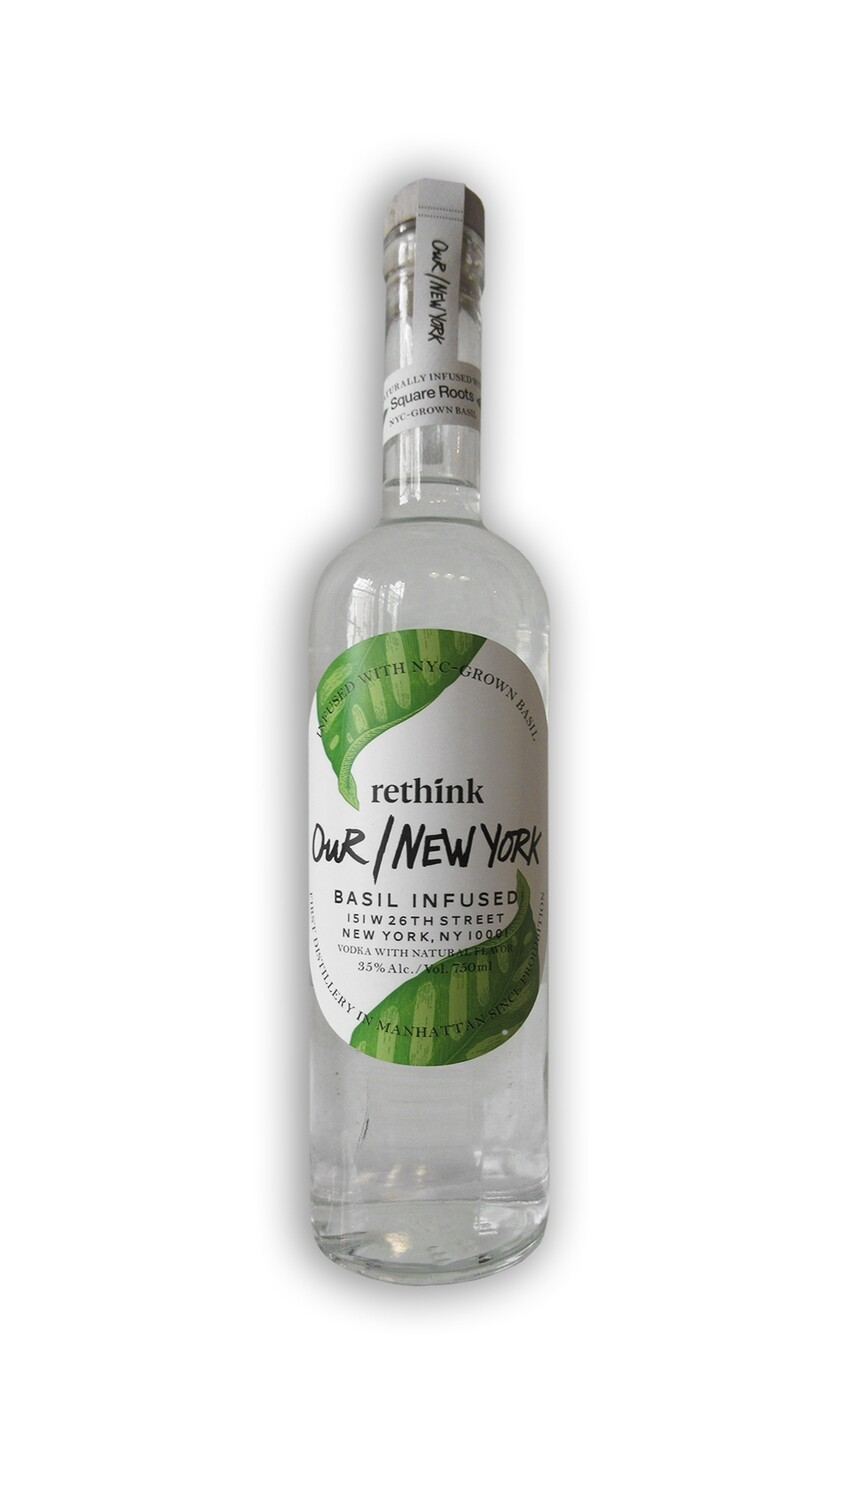 rethink Our/New York Vodka Basil Infused